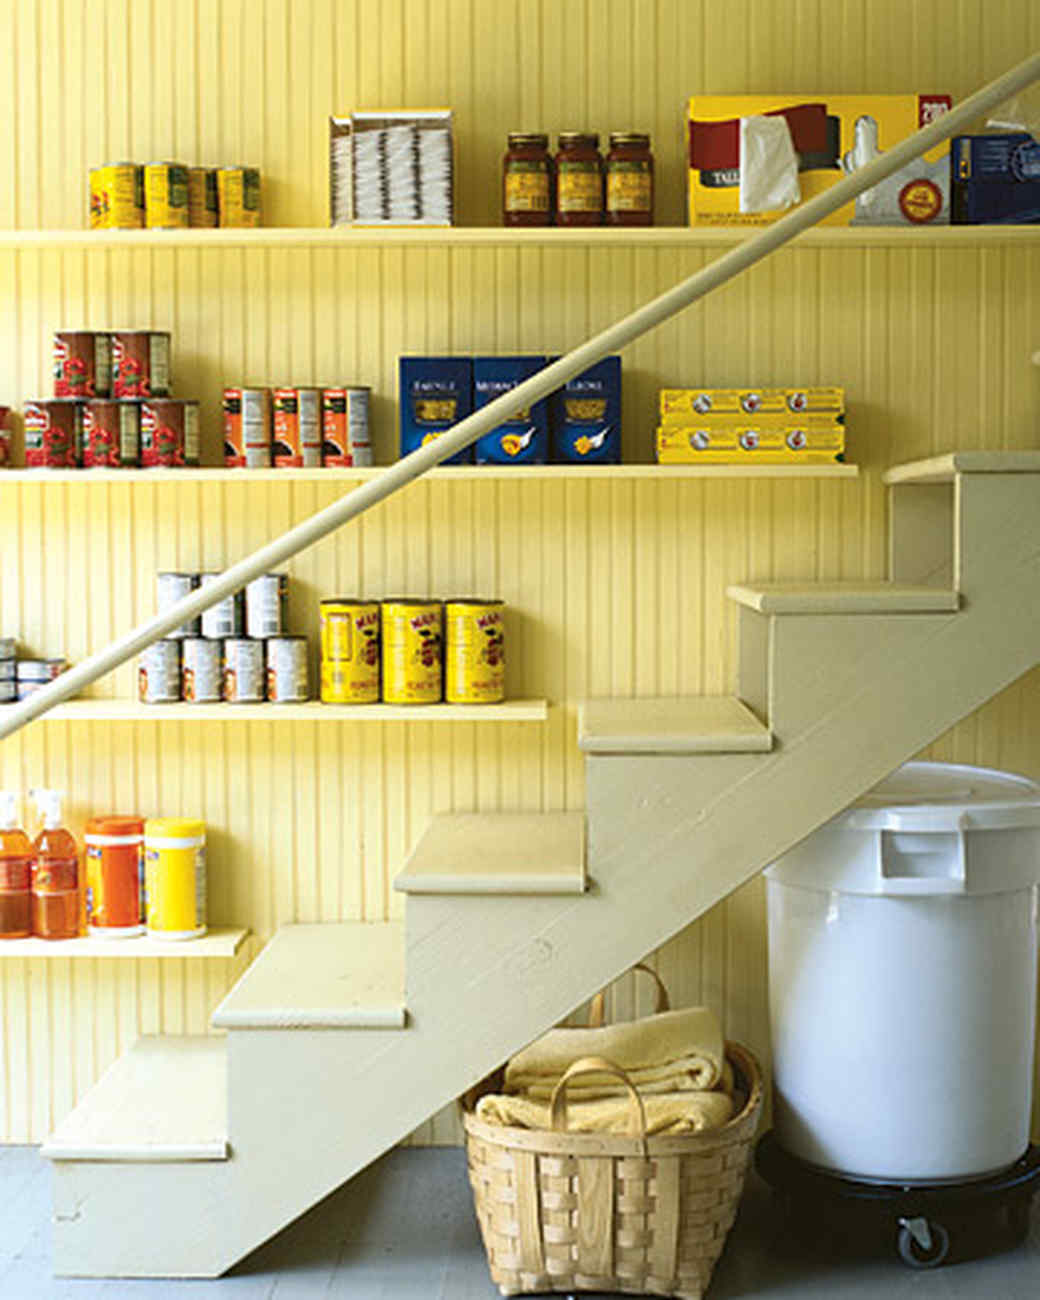 Effective Pantry Shelving Designs For Well Organized: 10 Best Pantry Storage Ideas